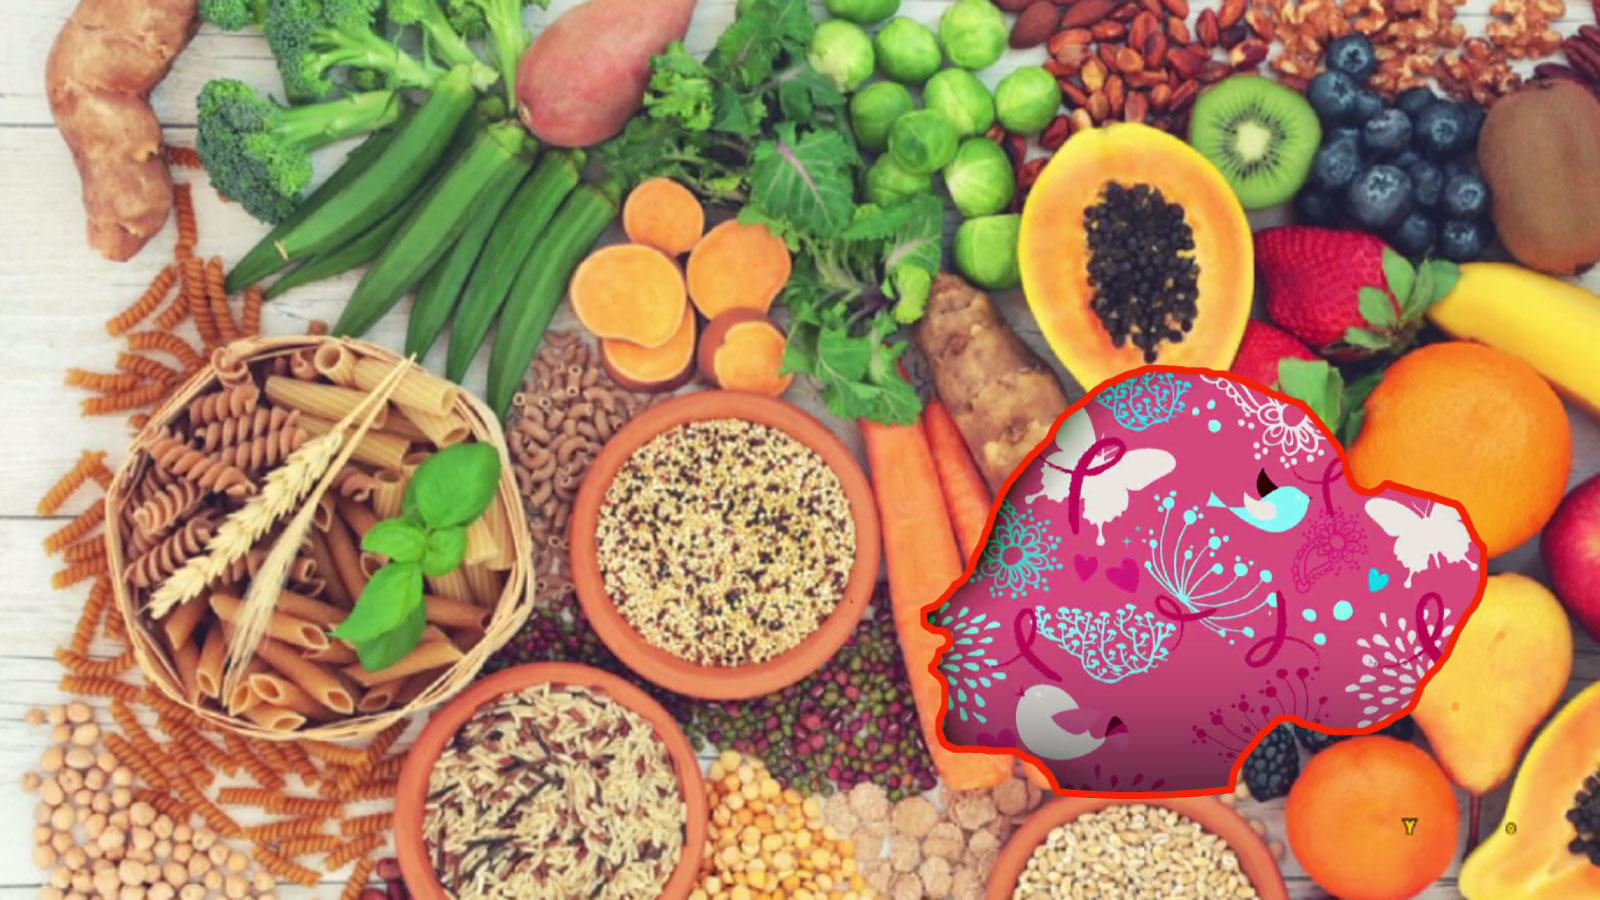 higher-dietary-fibre-intake-in-young-women-may-reduce-breast-cancer-risk-study